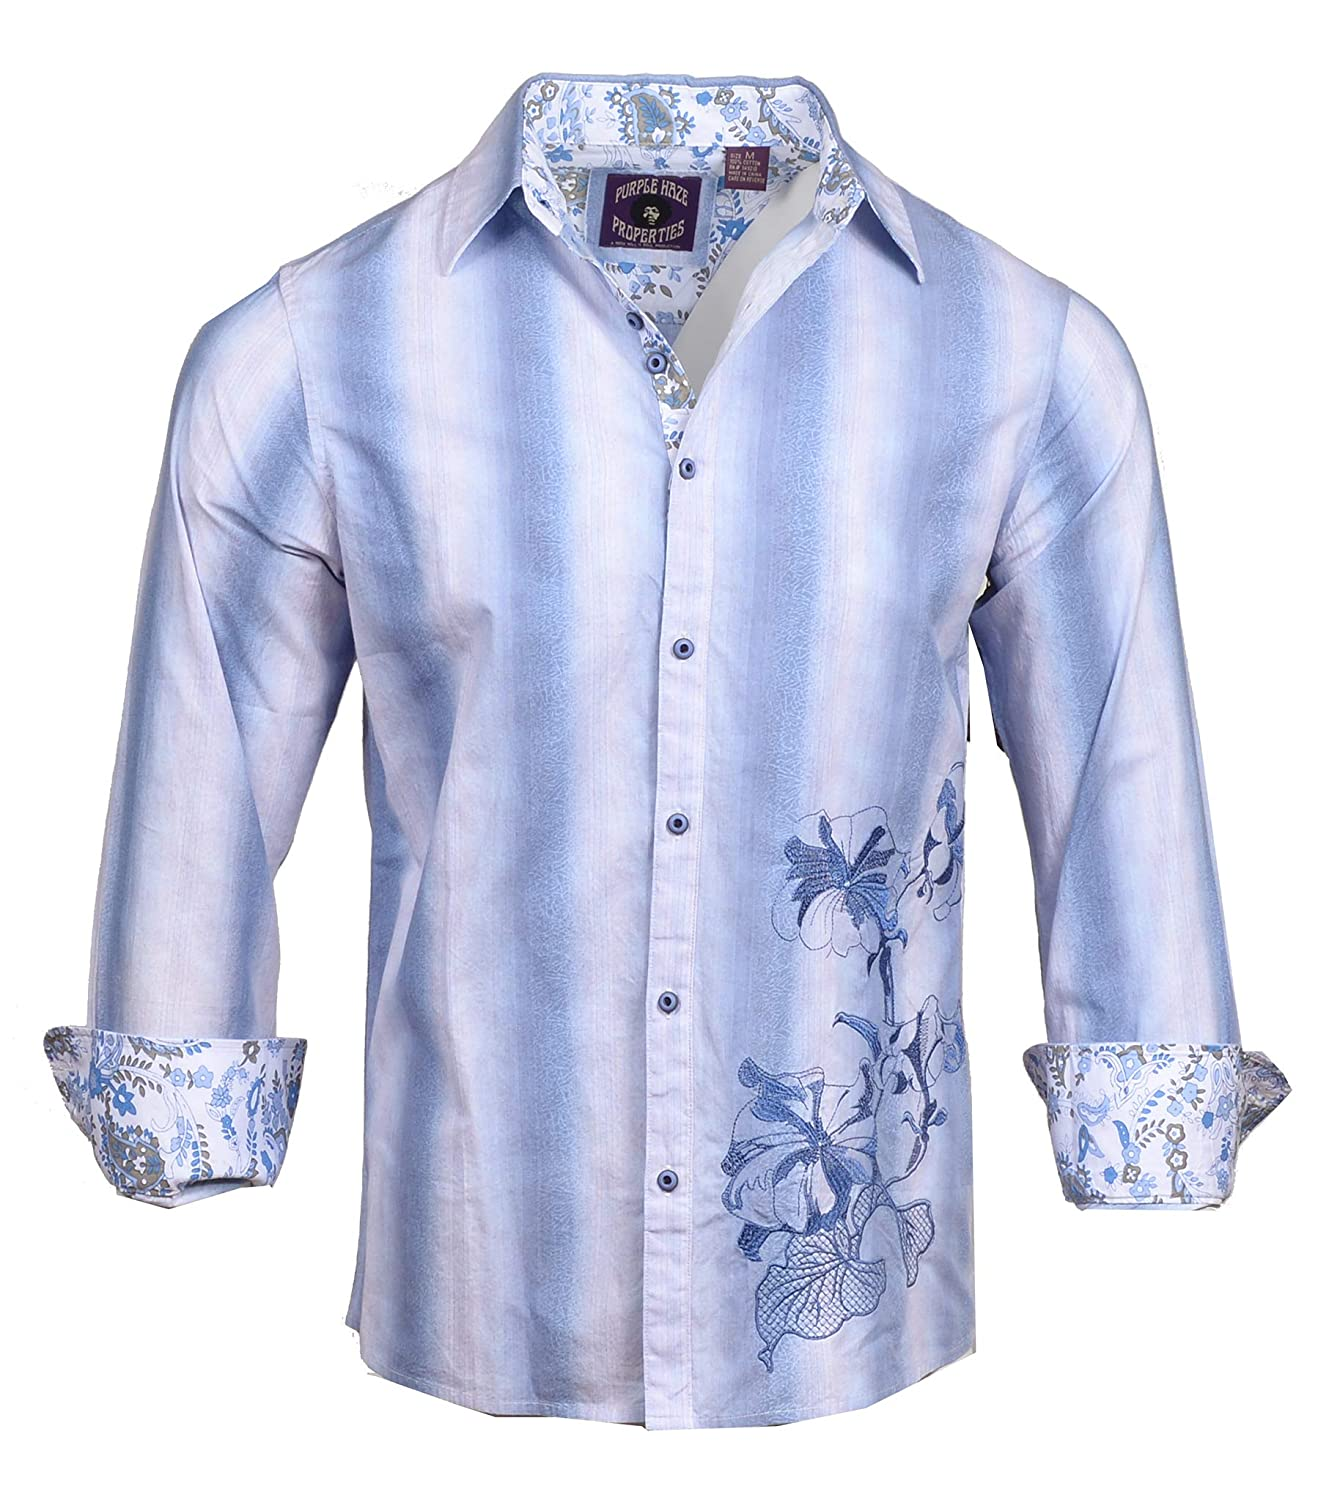 M/&S/&W Sets Mens Summer Linen Short Sleeve T-Shirt and Shorts 2 Piece Set Outfits